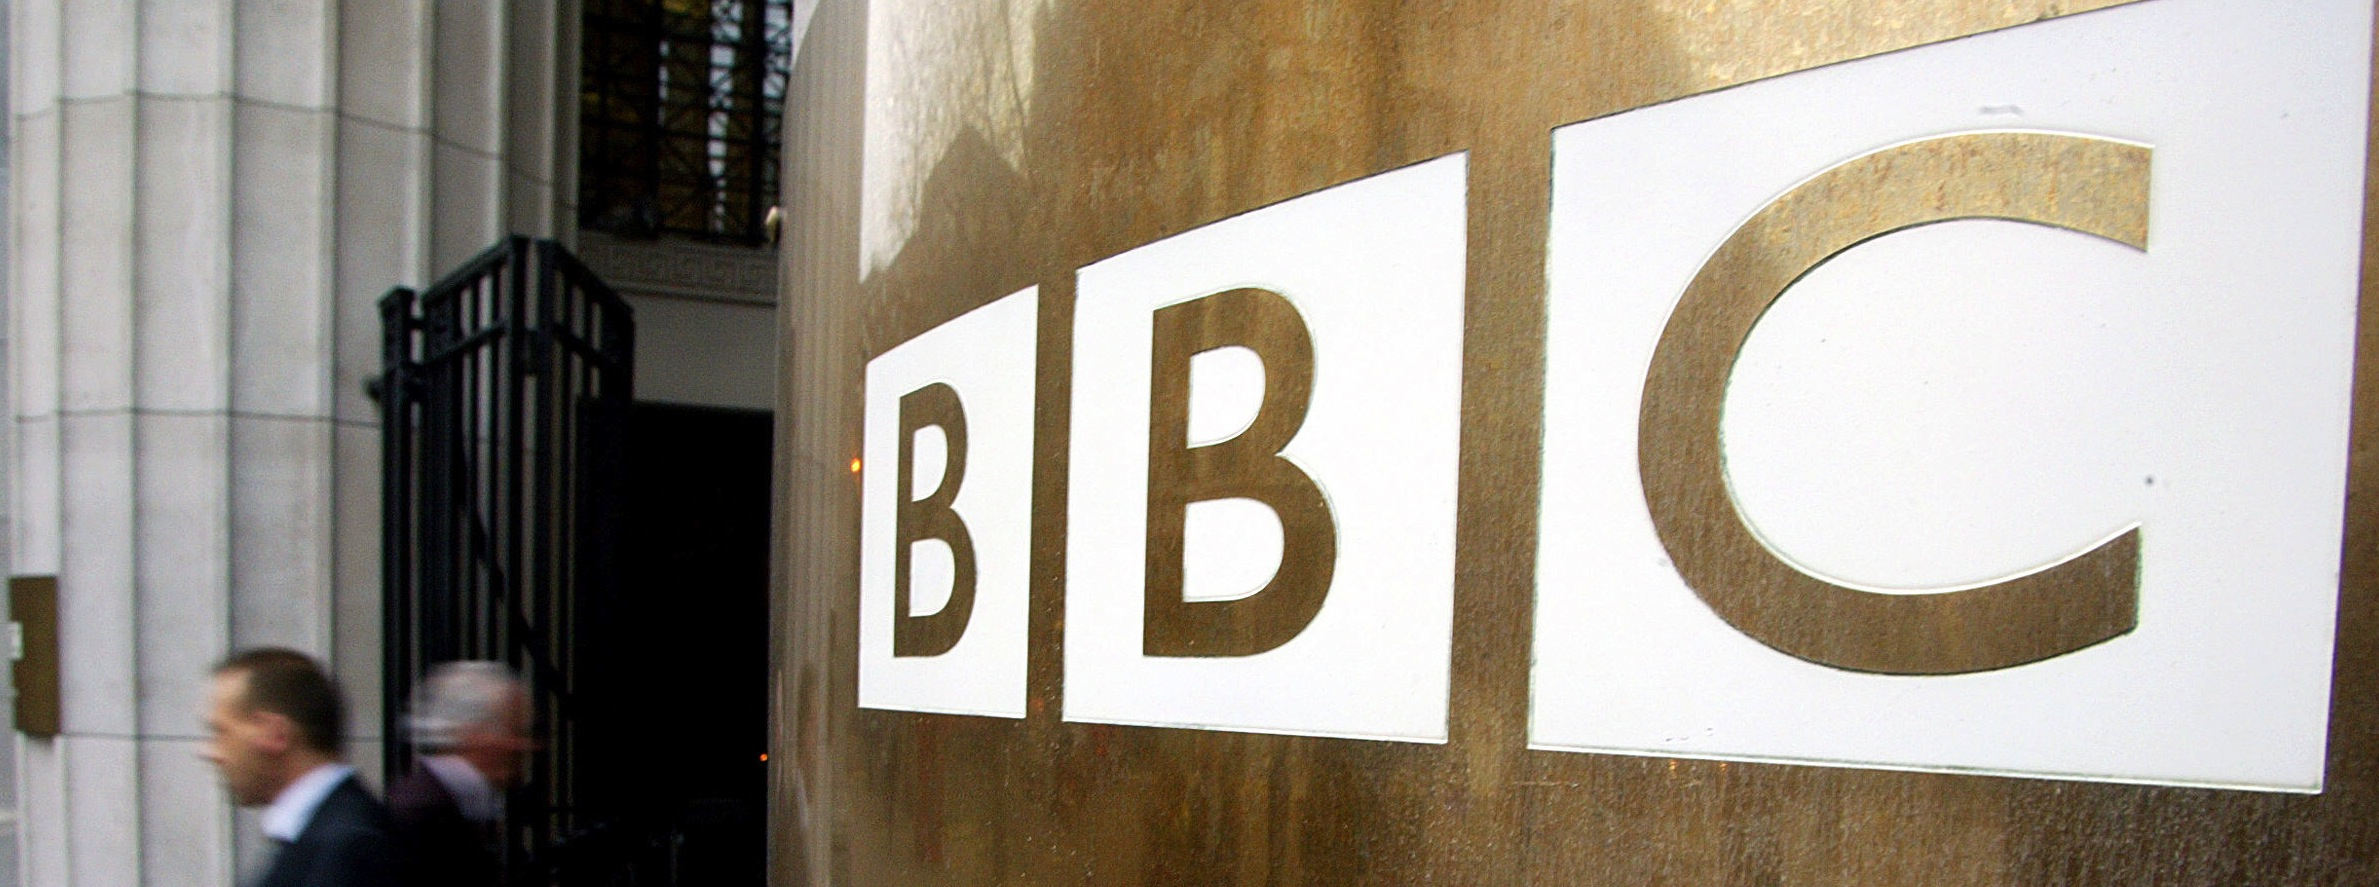 BBC Overhauls CBBC iPlayer UI, CBeebies to Follow